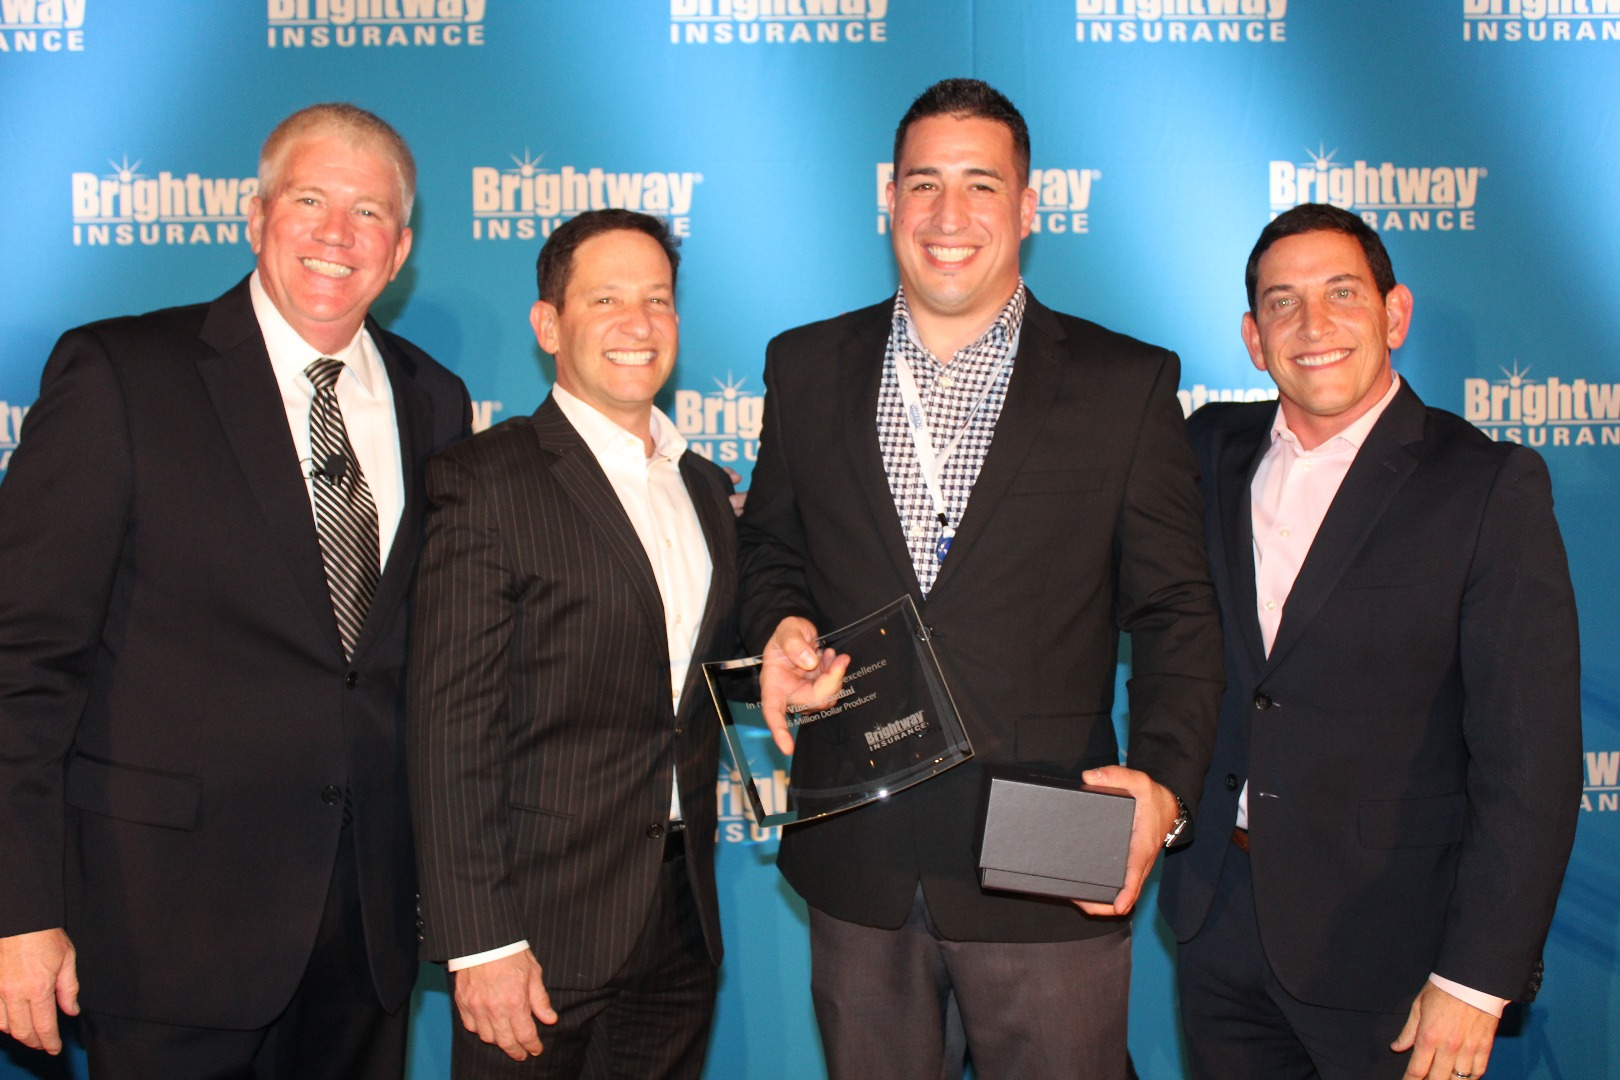 01.19.2017_Vincent Zanfini wins the Brightway Insurance -1 Million Producer award.JPG